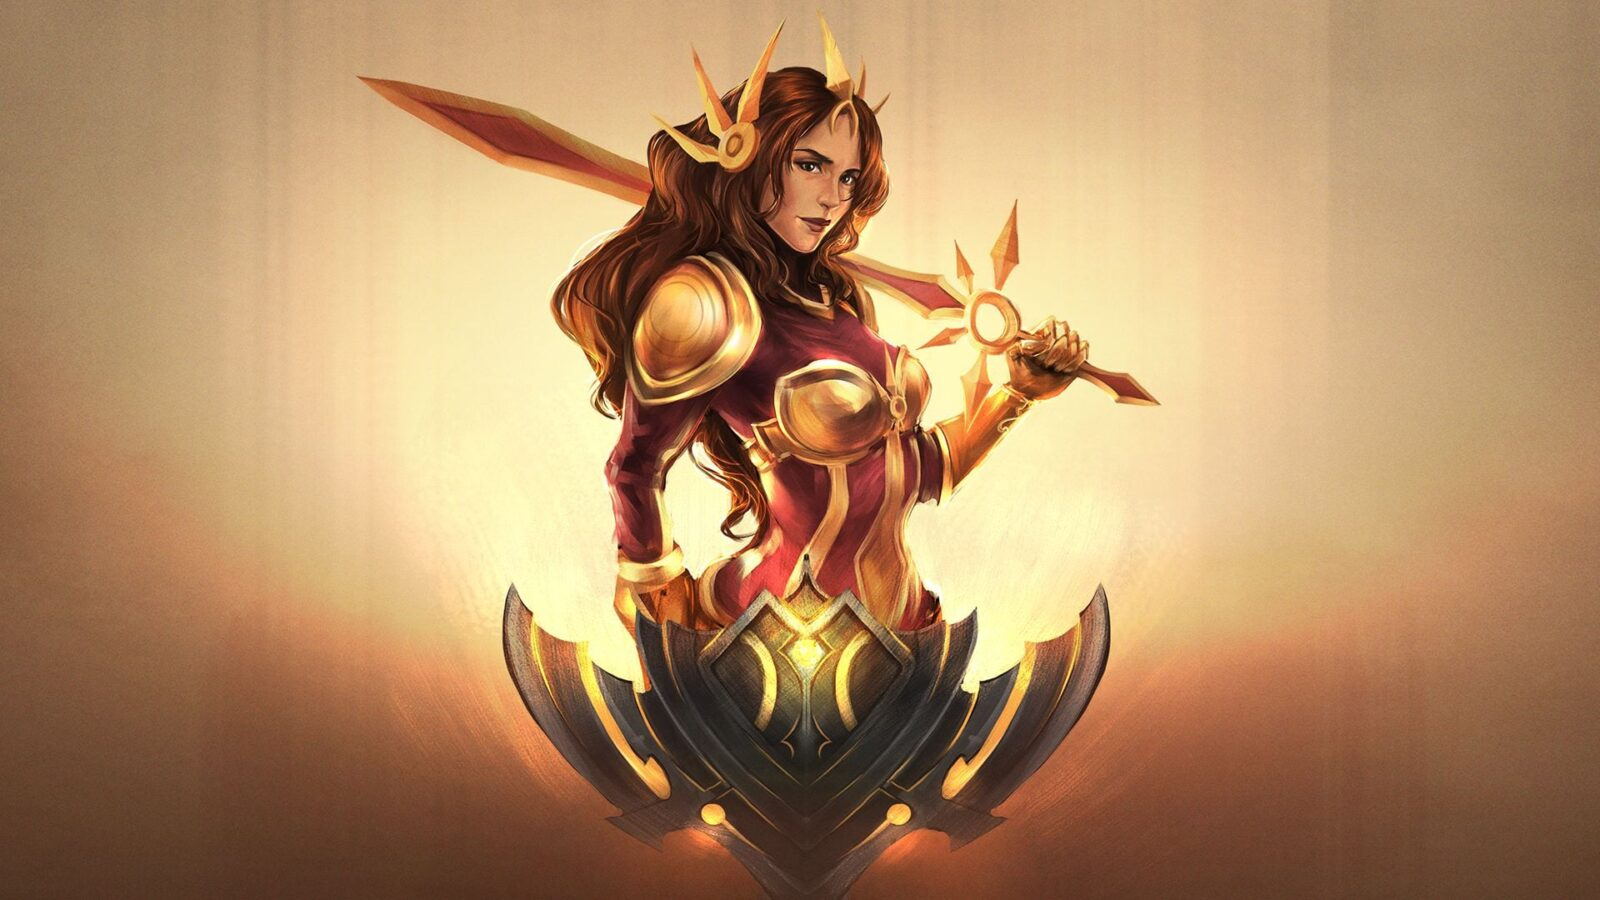 24 Leona Hd Wallpapers Download